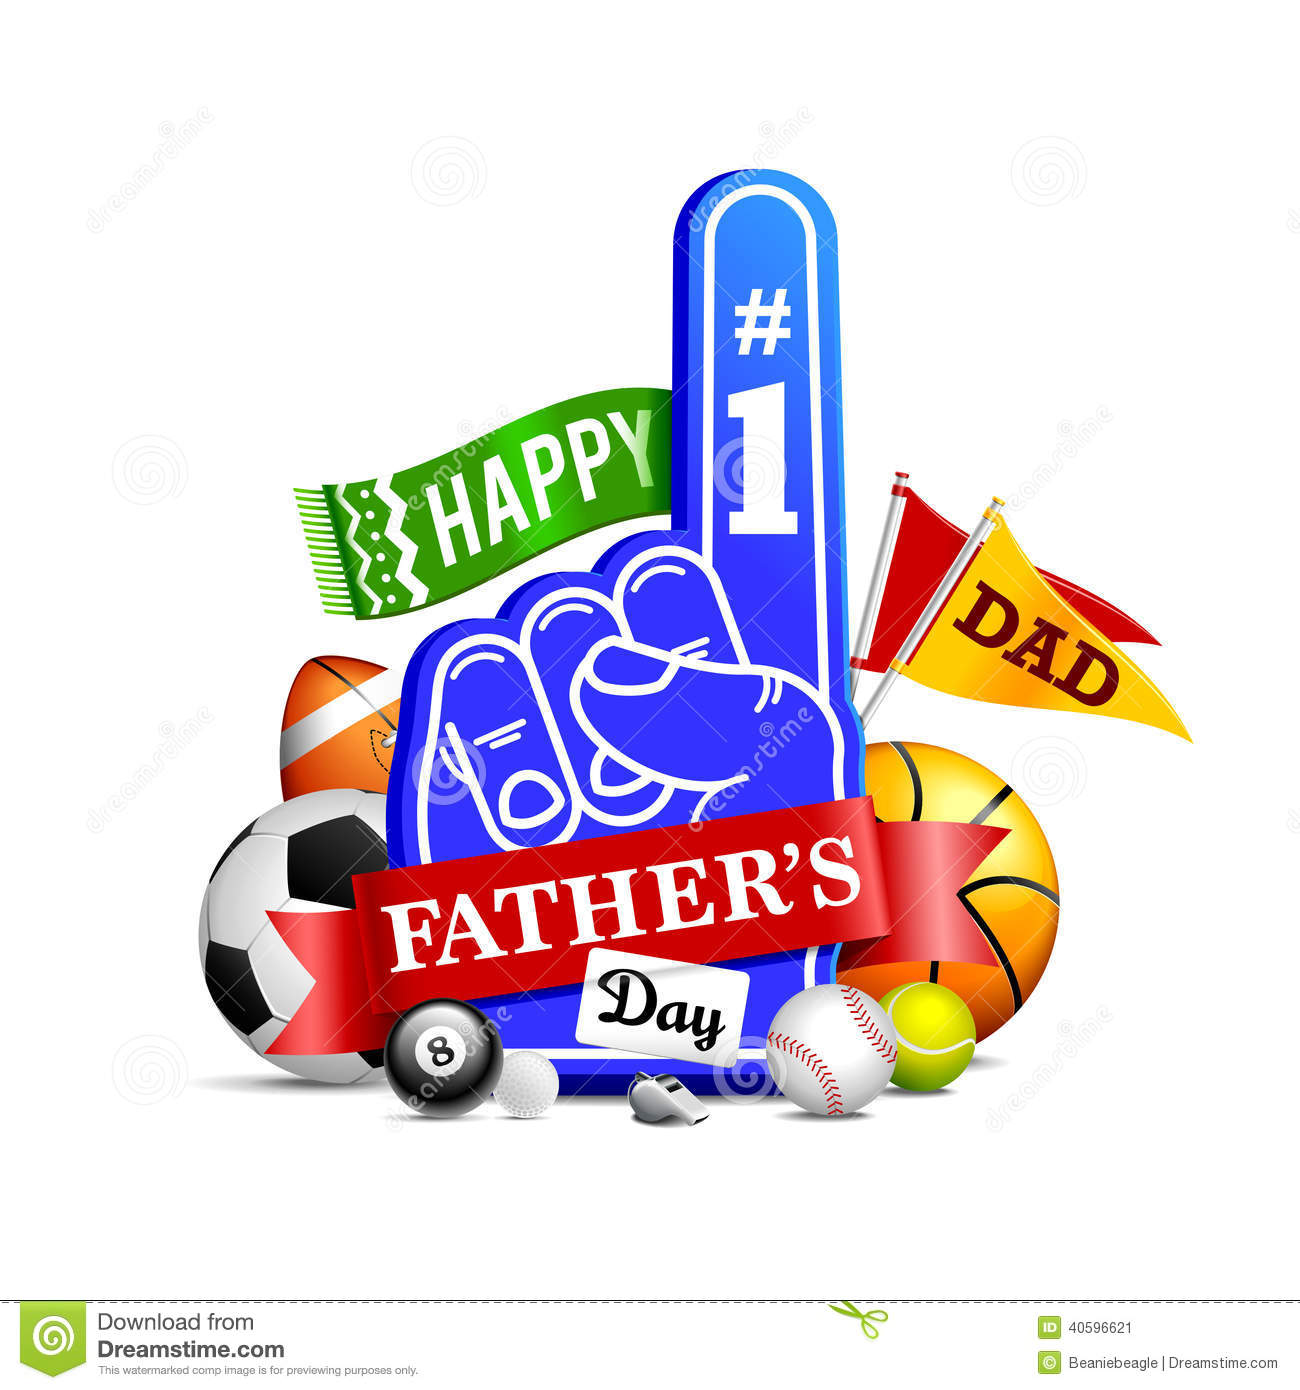 Happy Father's Day stock vector. Image of glossy, design ...